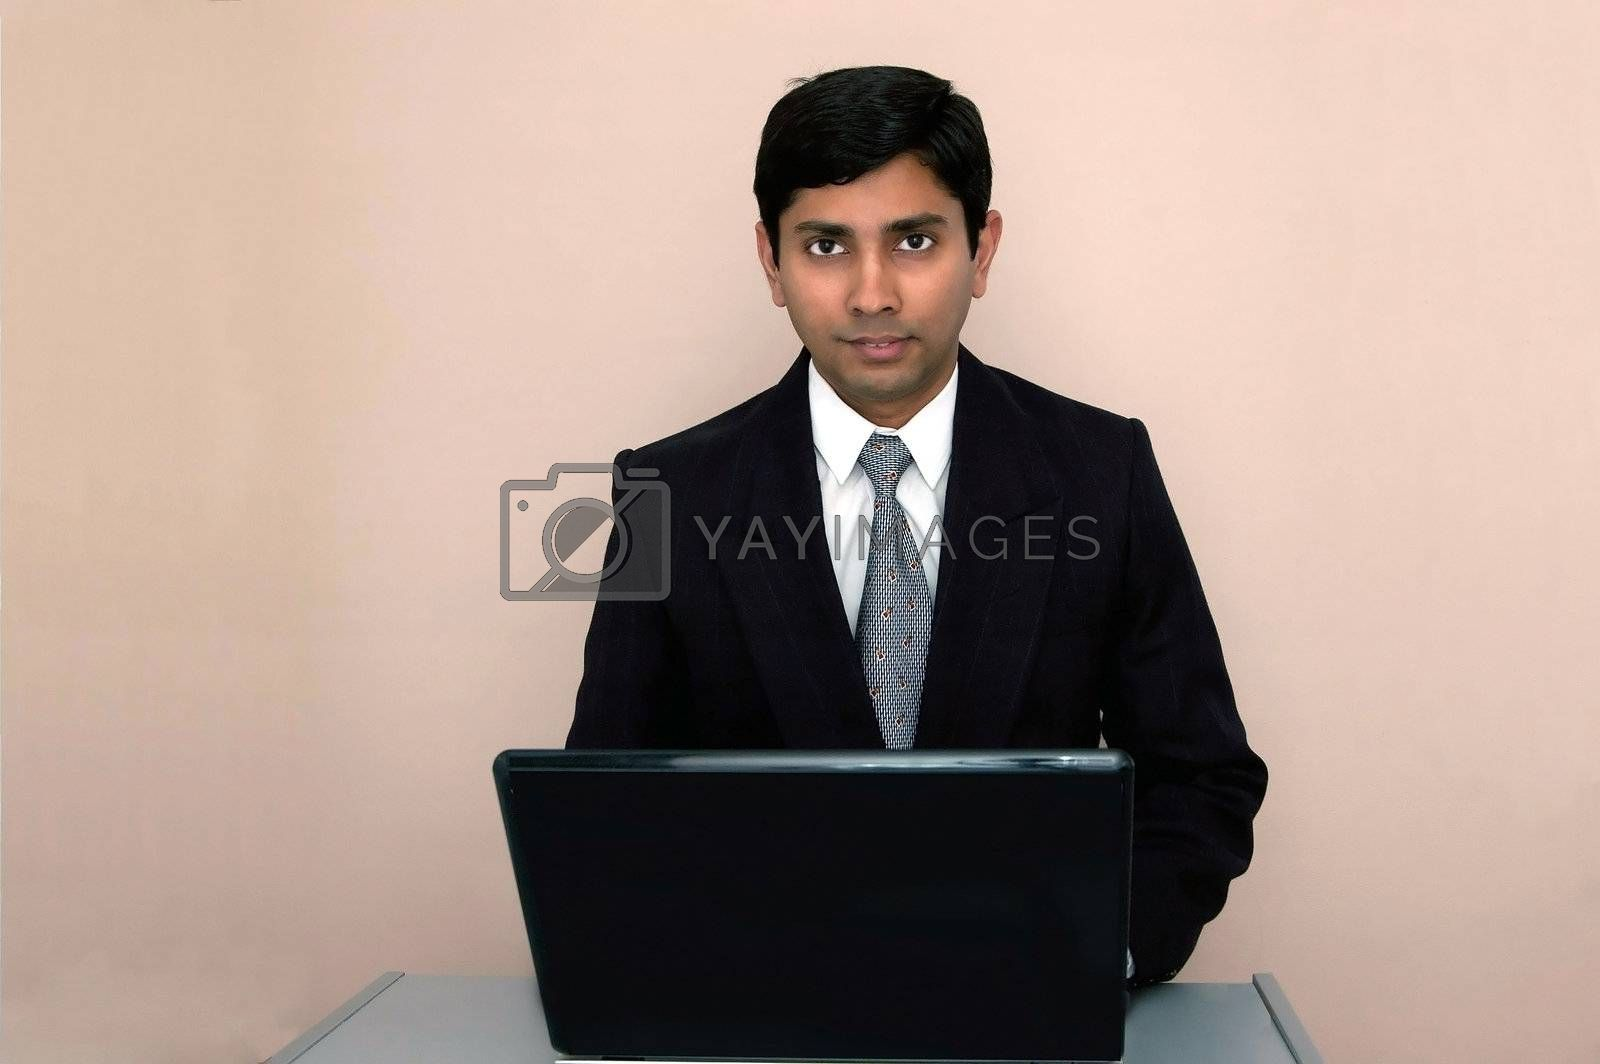 An handsome Indian businessman working on a laptop